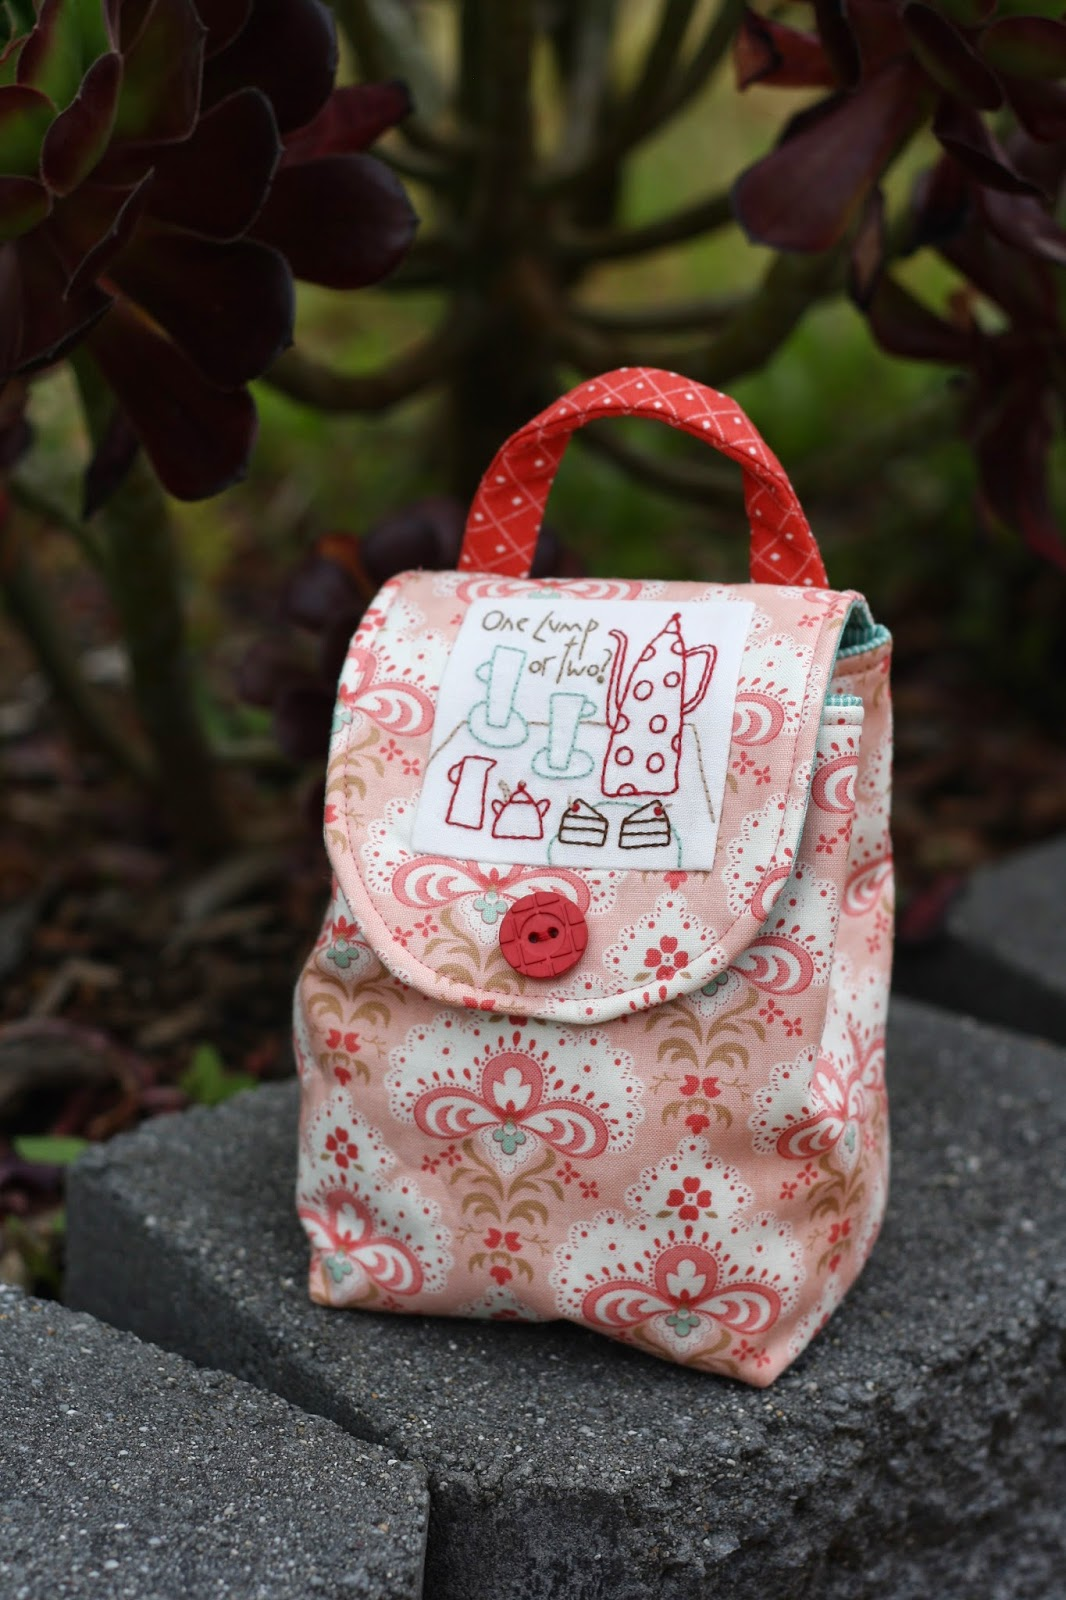 Mug Bag, designed by Anni Downs, stitched by Natasha Walter